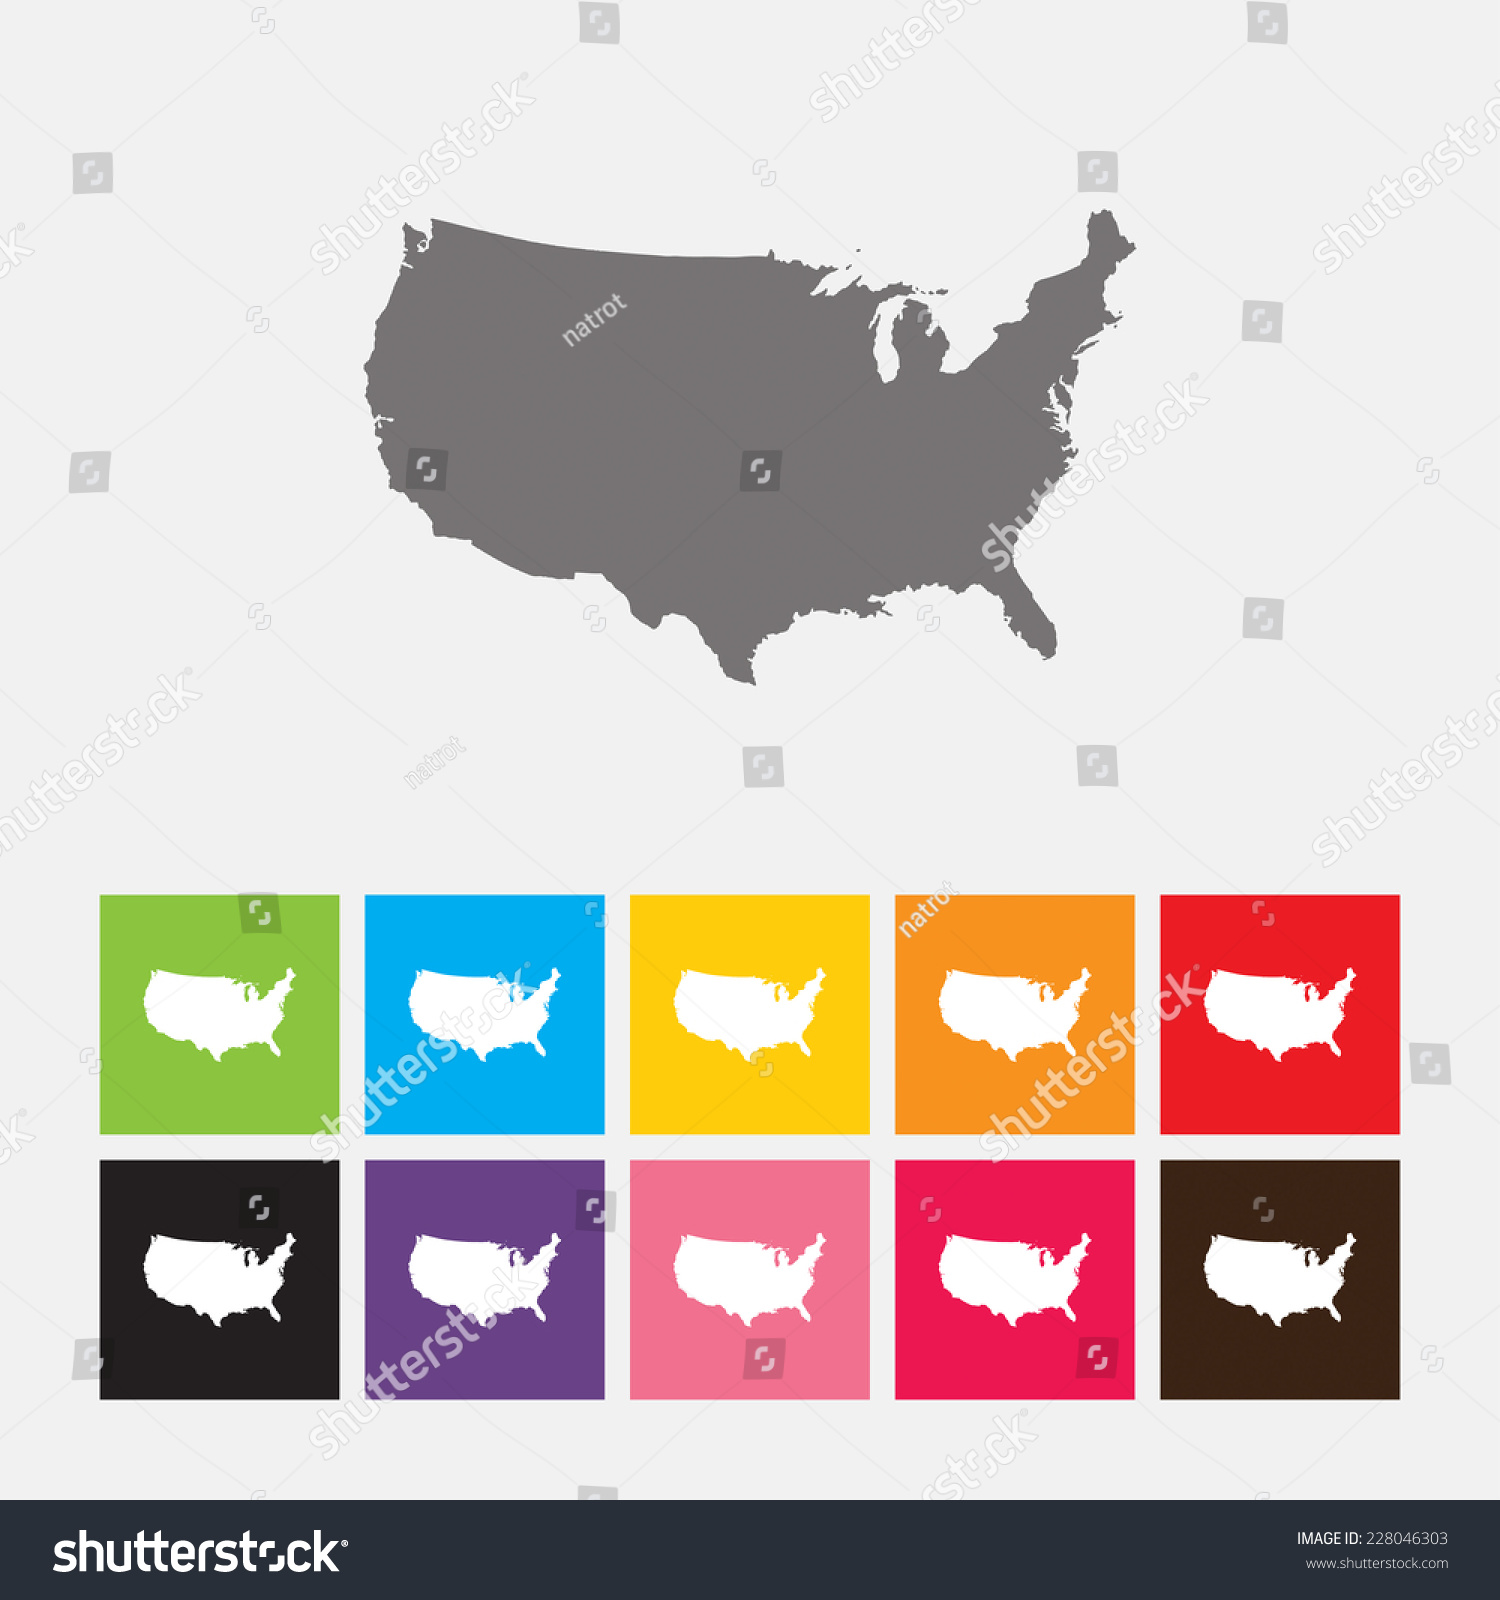 Map United States Icon Vector Stock Vector Shutterstock - Us map icon